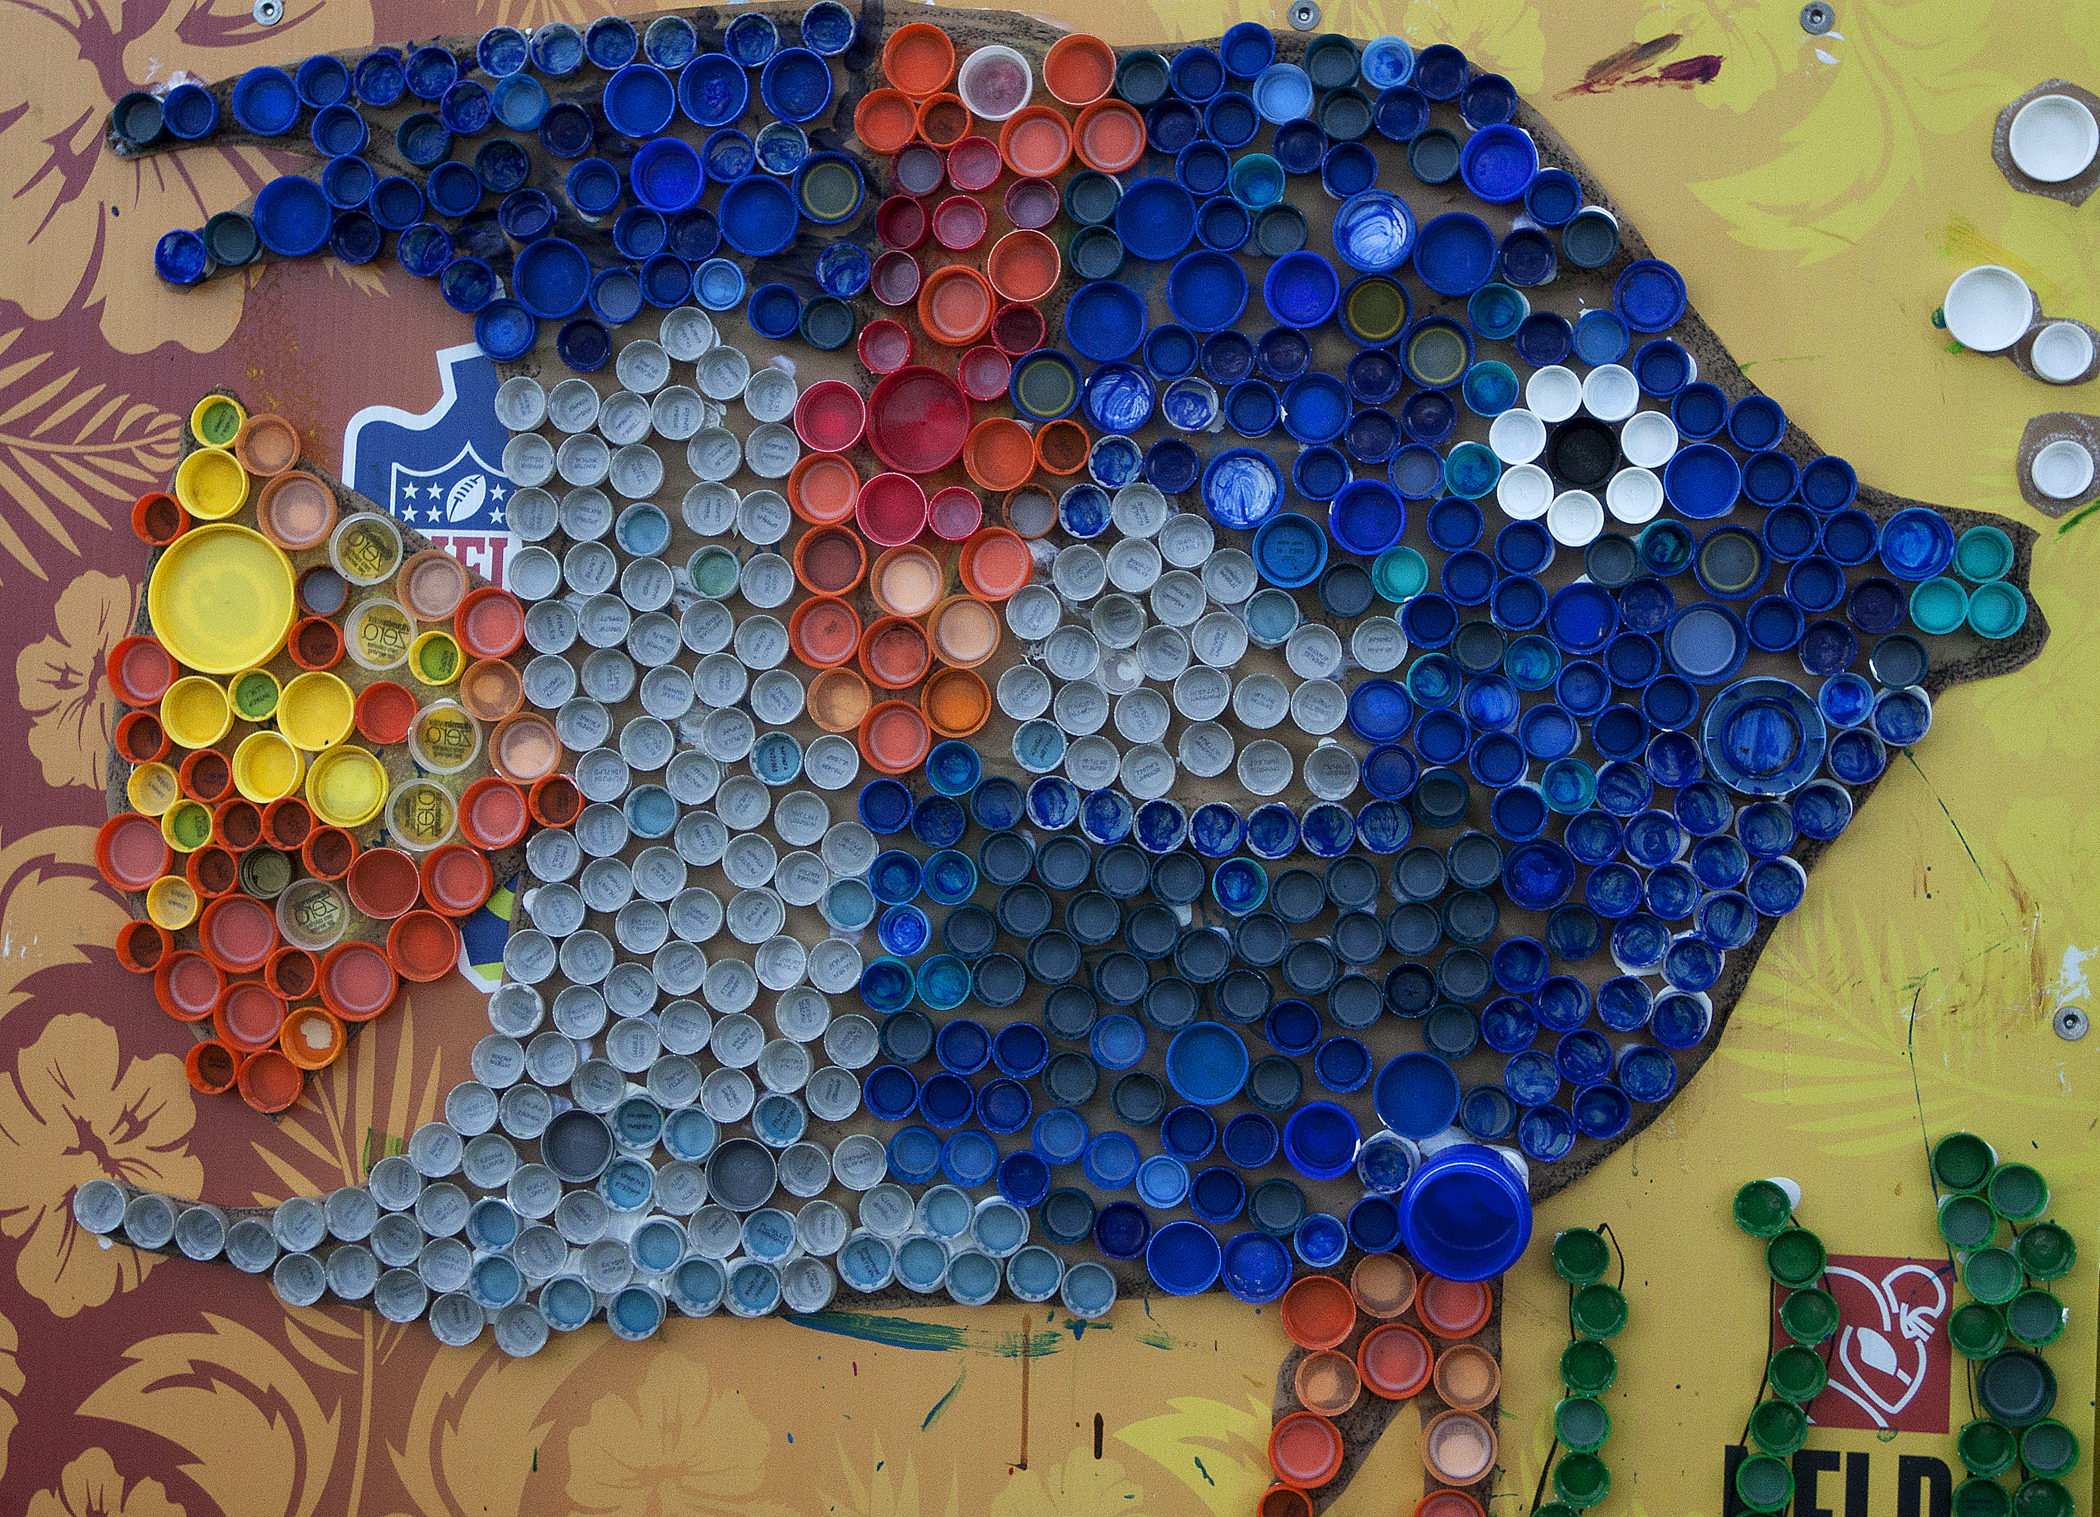 "A piece of artwork is made of recycled bottle caps pasted together by children near Riseley Field at Marine Corps Base Hawaii, April 16, 2013. The finished piece will go on display during the Earth Day Expo April 20, 2013 to show the creativity of the children who attended ""Eco-Friendly In the Park."" (U.S. Marine Corps photo by Lance Cpl. Matthew Bragg)"